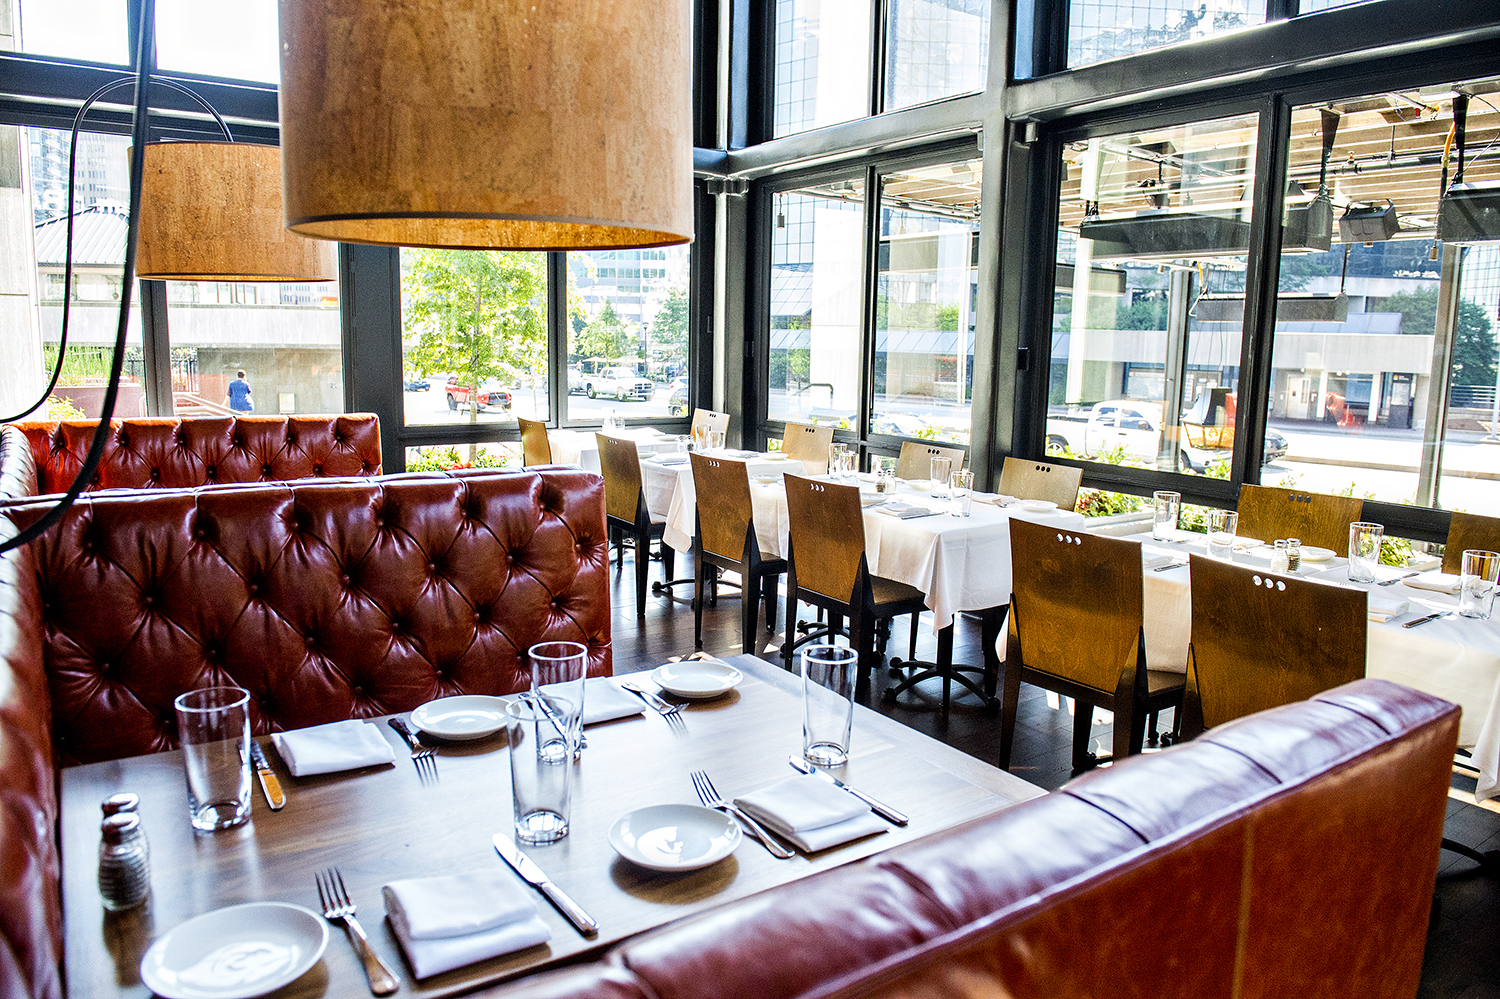 City Kitchen look around south city kitchen's new buckhead outpost - eater atlanta